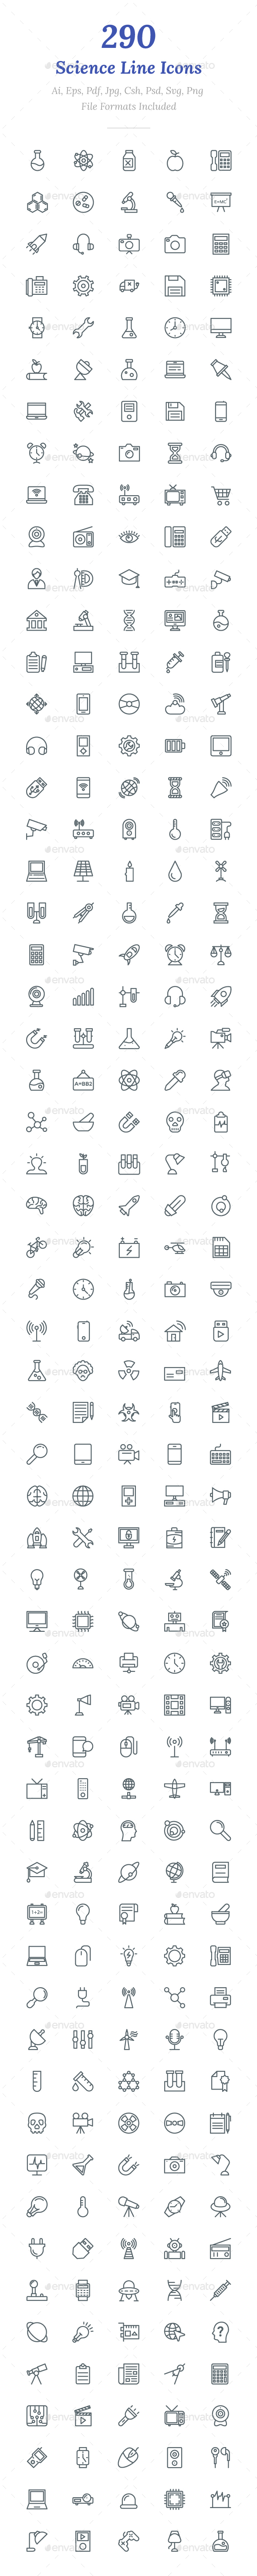 290 Science Line Icons - Icons